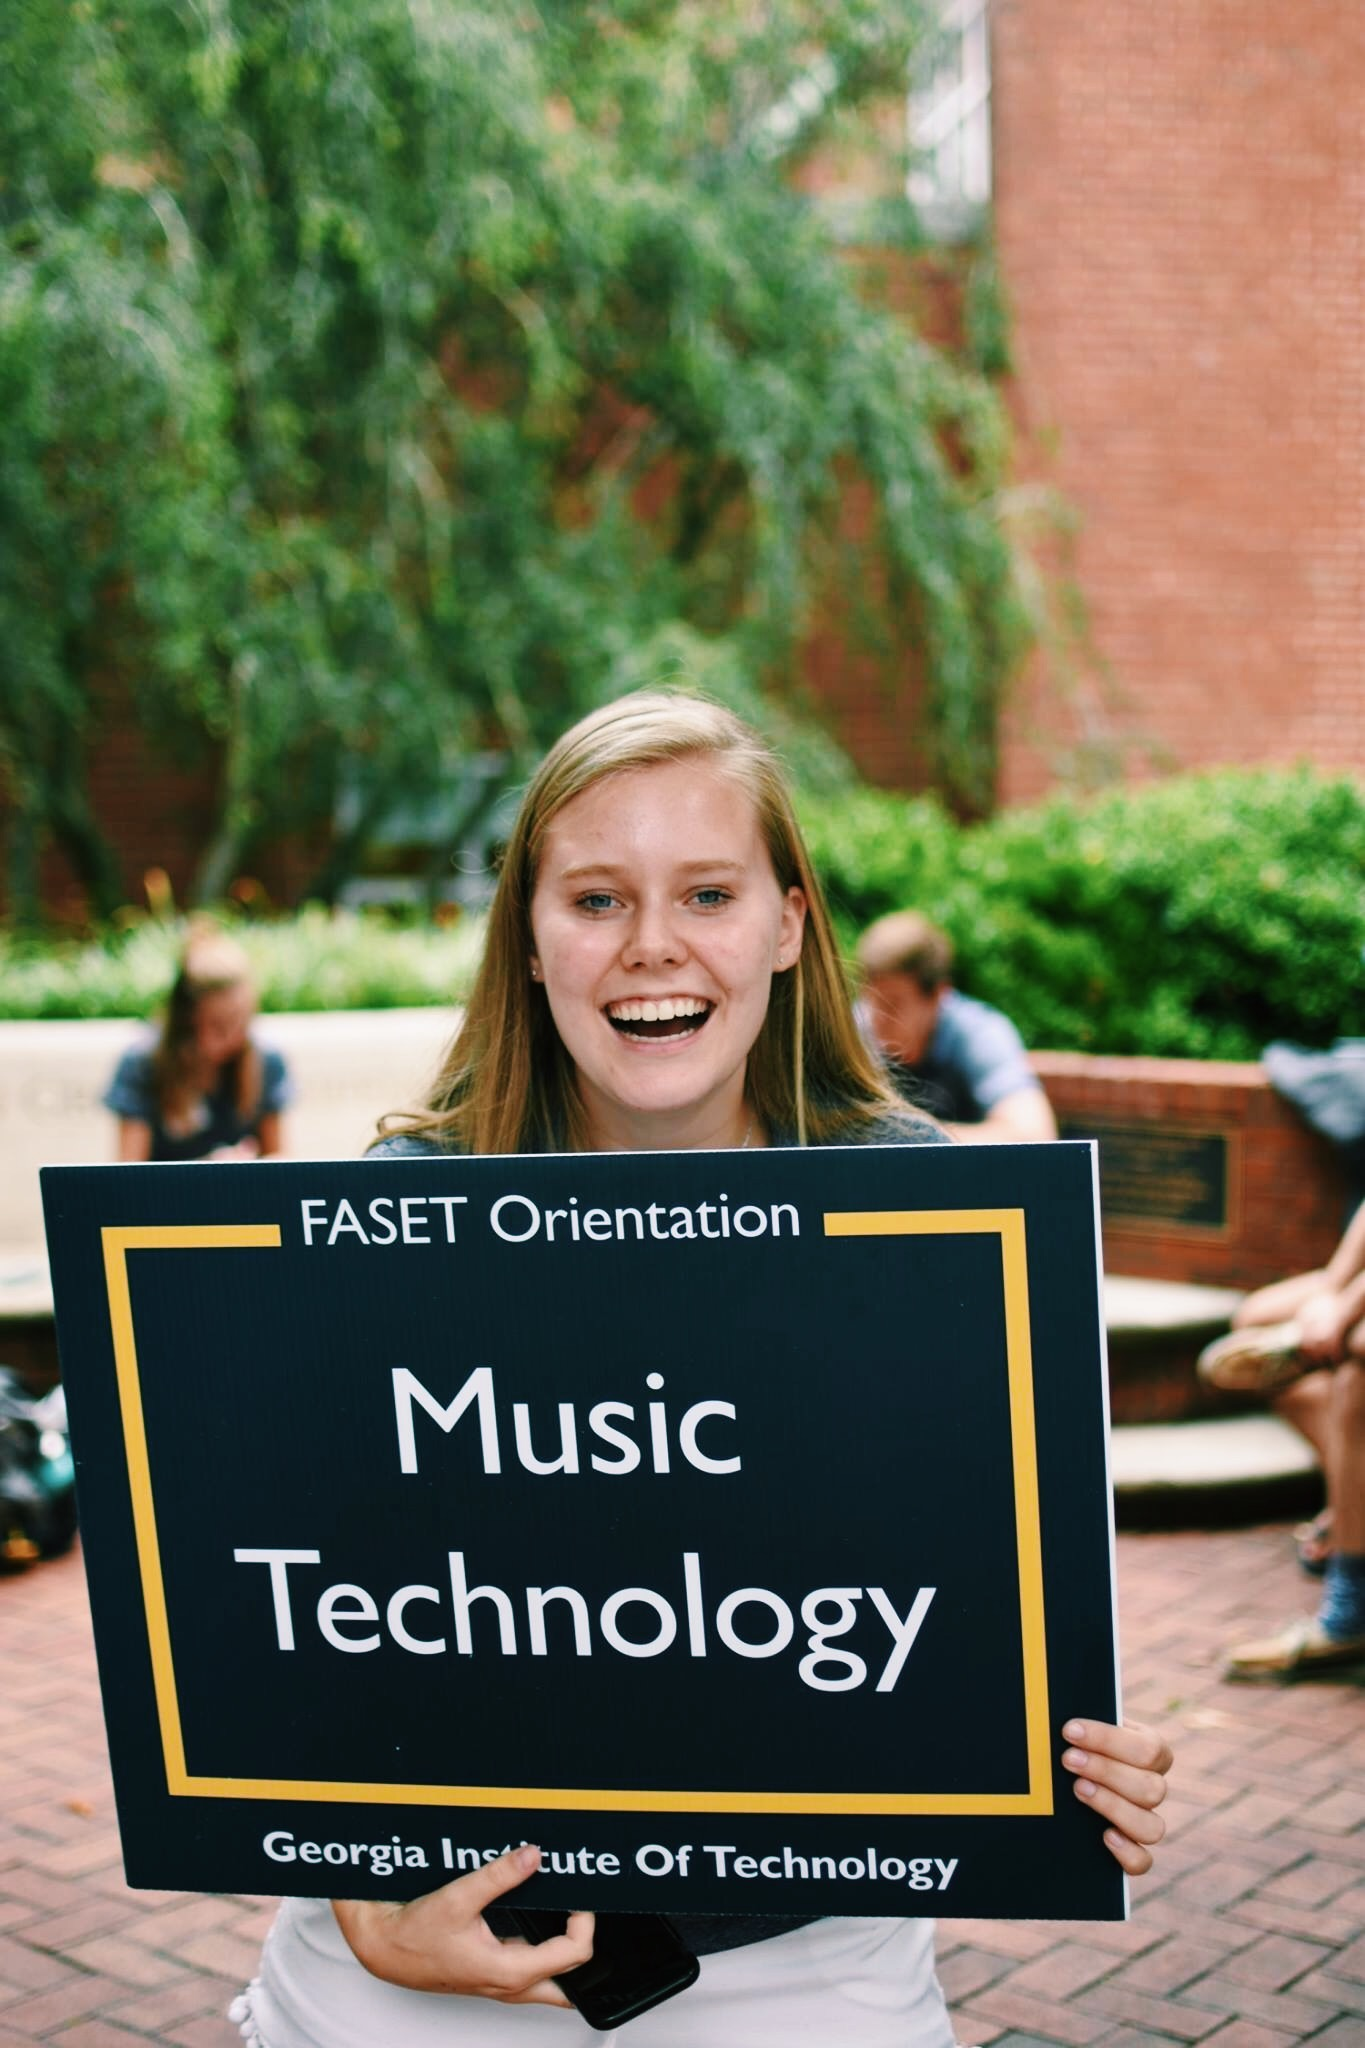 "Carson Myers  ""One of my favorite things about Georgia Tech is the diverse campus community that is filled with passionate and unique people. Through my involvement on campus, I've met inspiring students who have helped mold me into who I am today. I have loved welcoming new students as a FASET leader, GT 1000 Team Leader, and Summer Sessions intern in the Office of Undergraduate Education. Being around excited incoming students always reminds me of how lucky I am to be at Georgia Tech! I also serve as Georgia Tech Student Ambassador and have cherished the opportunity to give back to the alumni, faculty, and staff that make GT such a special place. In addition to these involvements, I have to shout out to the School of Music! I have enjoyed exploring the field of music technology with the numerous creators in the Couch building. Being in the Women in Music Technology group has connected me with some of the female pioneers in the field and as a School of Music Ambassador, I've gotten to share this excitement with potential incoming students. This past year, I have been doing research in the GT Brain Music Lab and discovered this passion for research I didn't even know I had. I have also loved the ability to relax and unwind in Chamber Choir and Jazz Combo. I have found that the more time I devote to different groups within the GT community, the more fulfilled I feel at Georgia Tech! I am so grateful for my time here already and can't wait to see what's in store for my next two years."""